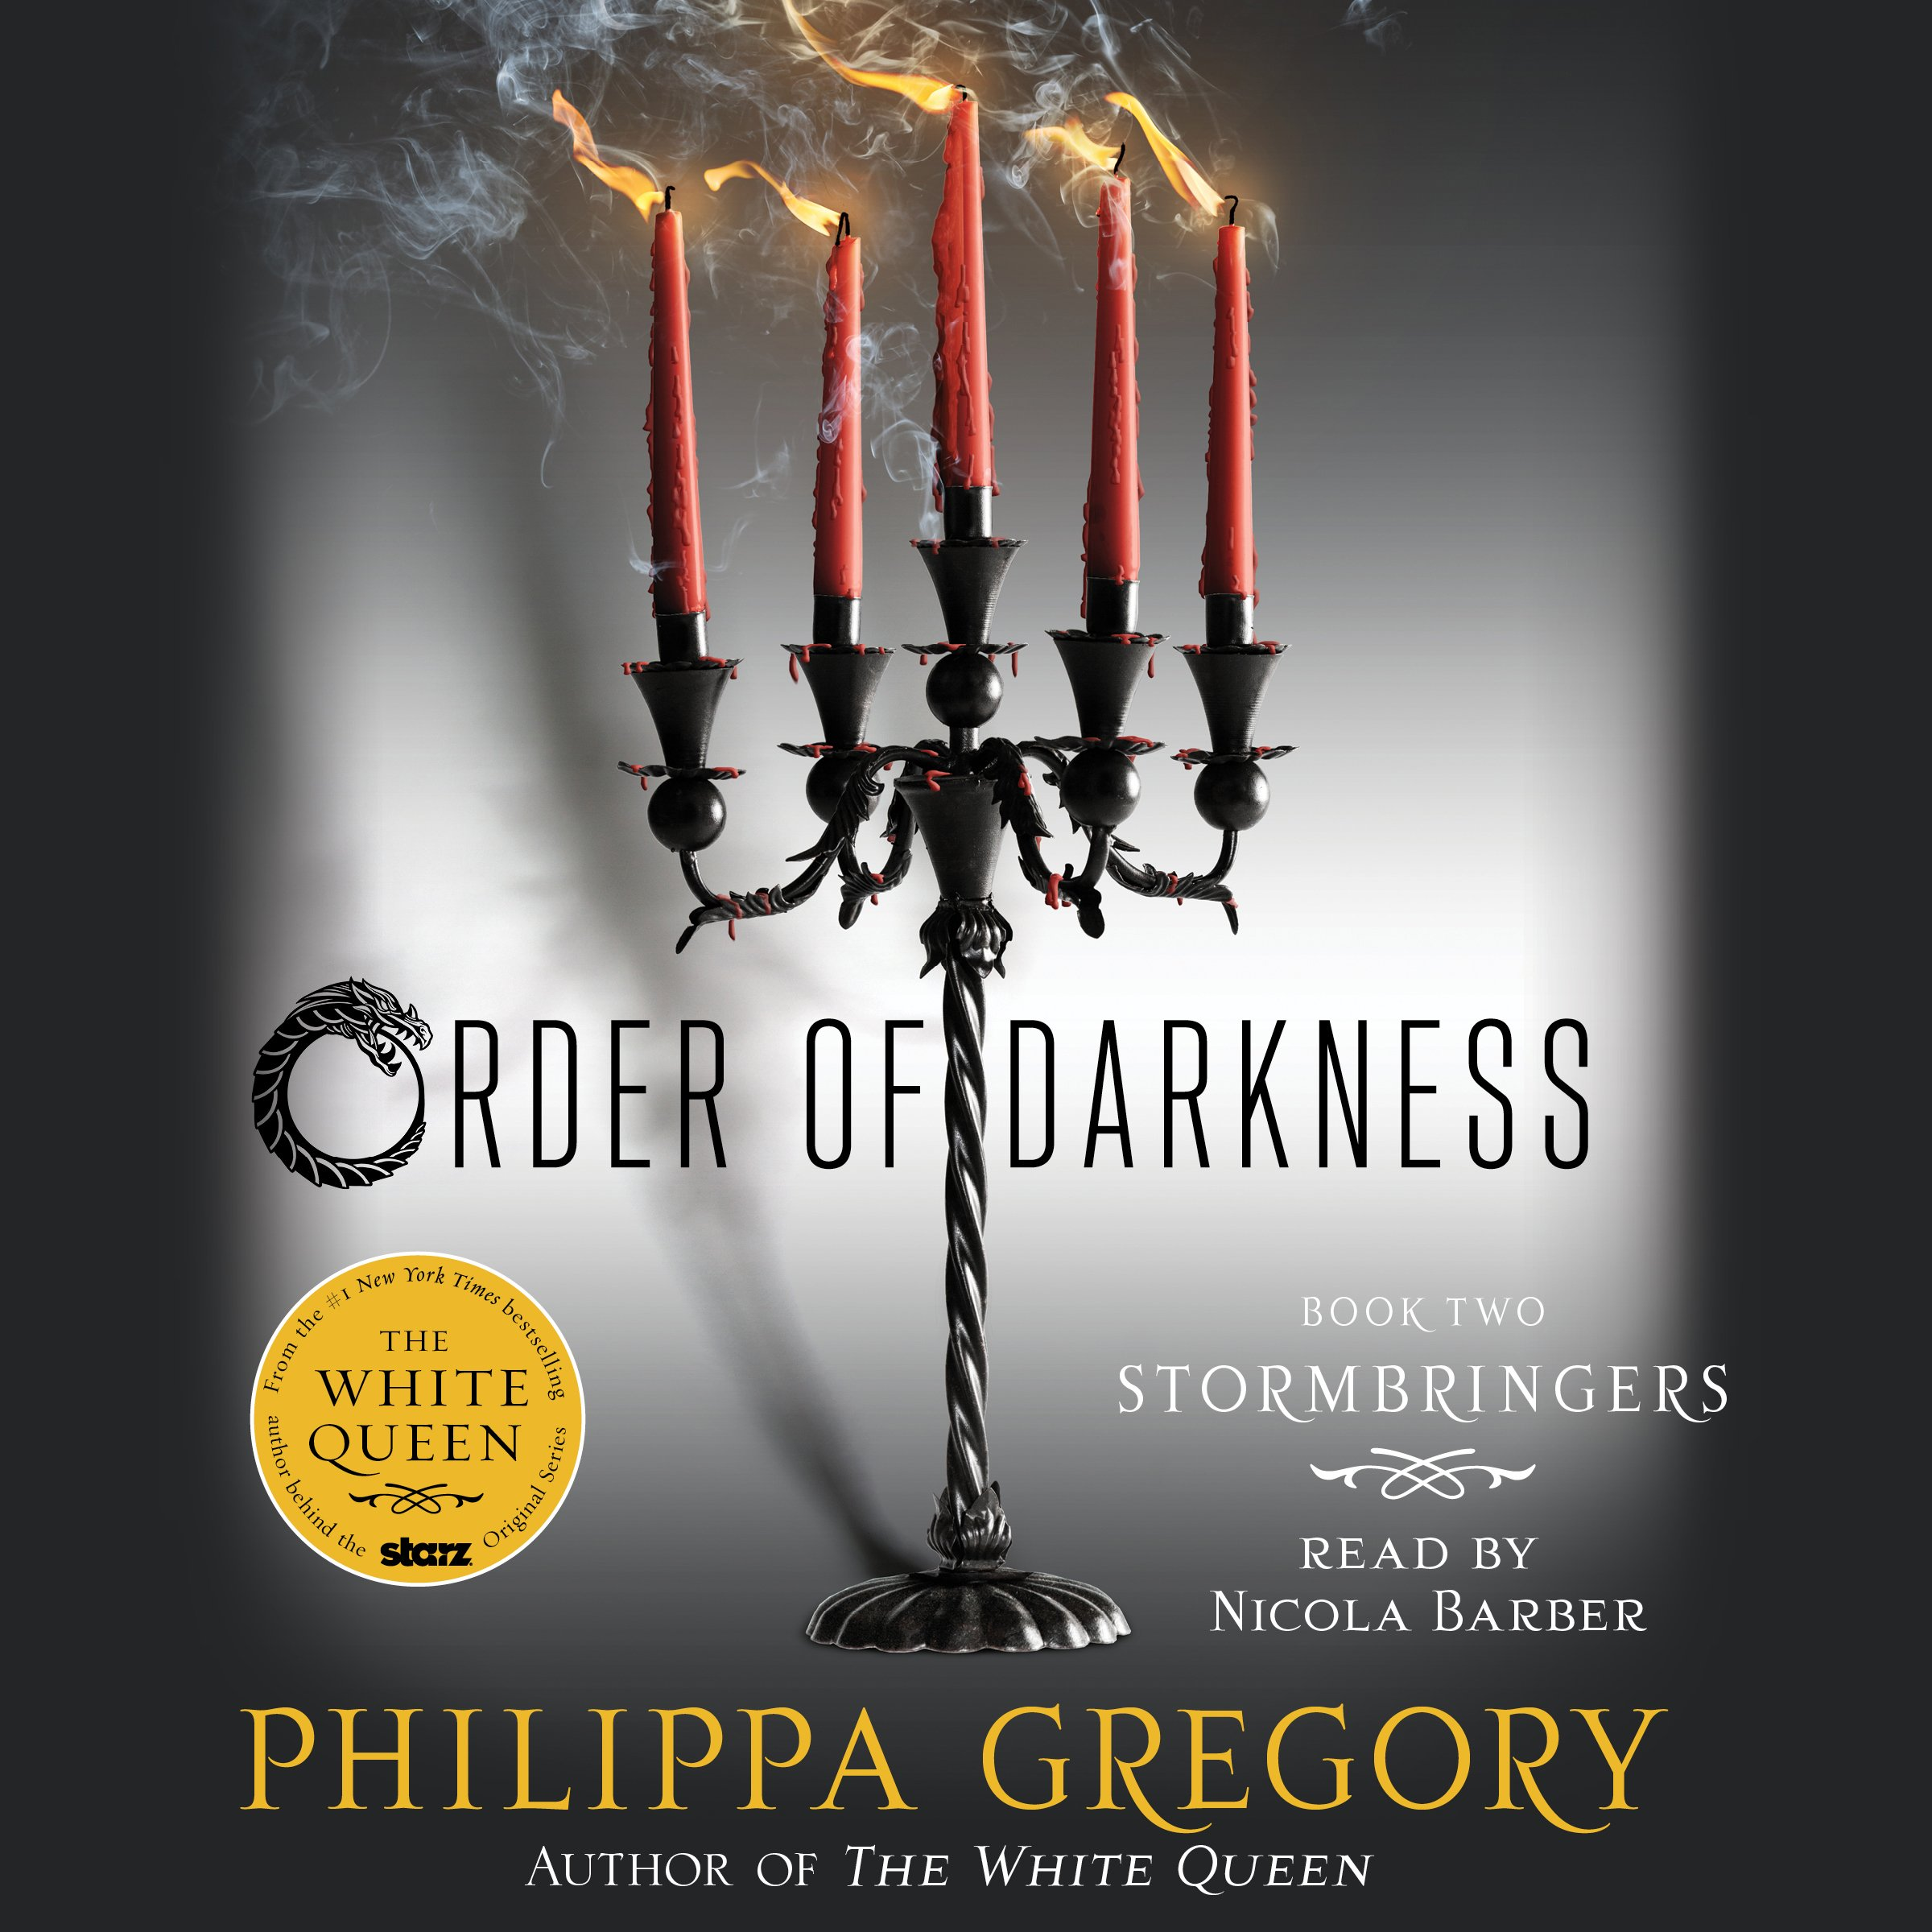 Stormbringers: Order of Darkness, Book 2